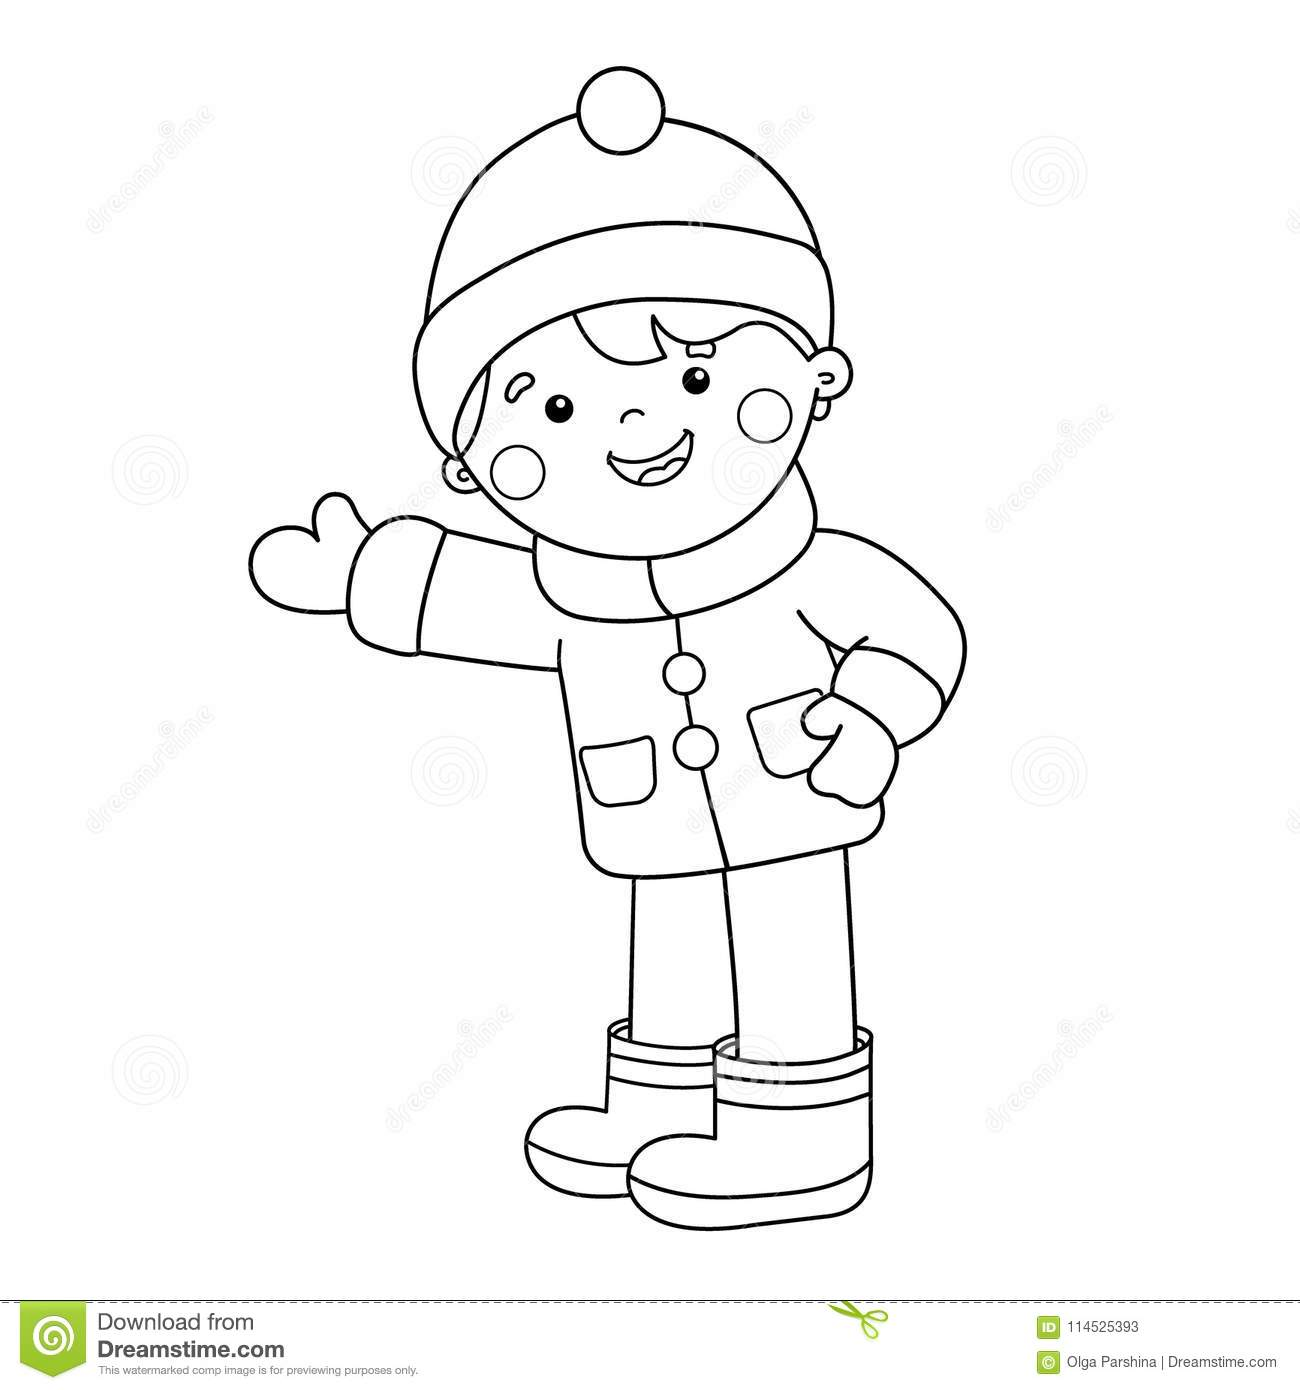 Coloring Page Outline Of Cartoon Boy. Winter. Coloring Book For Kids ...